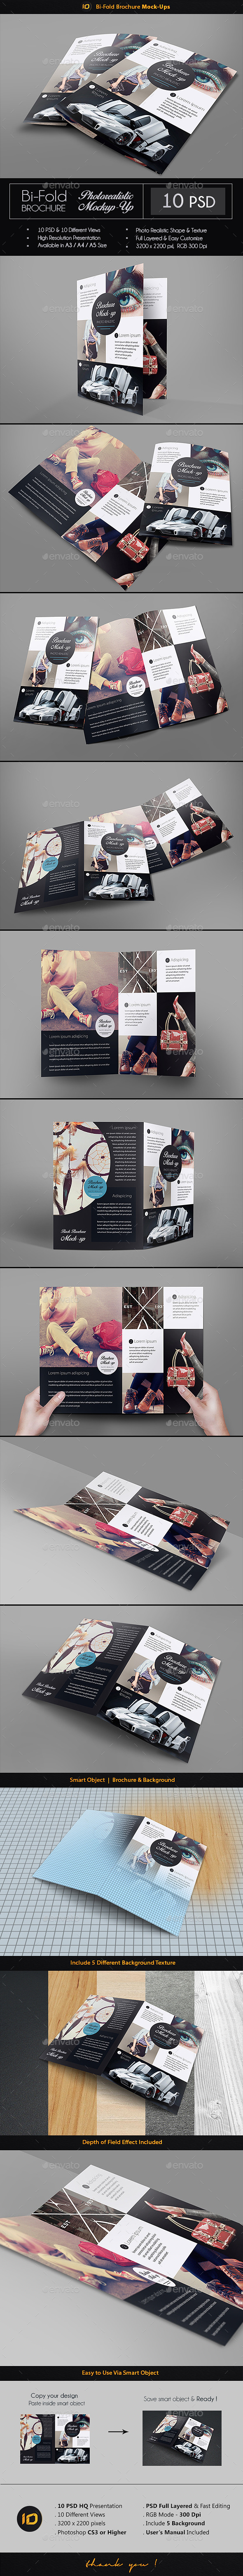 Realistic Bi-Fold Brochure Mock-Up - Brochures Print